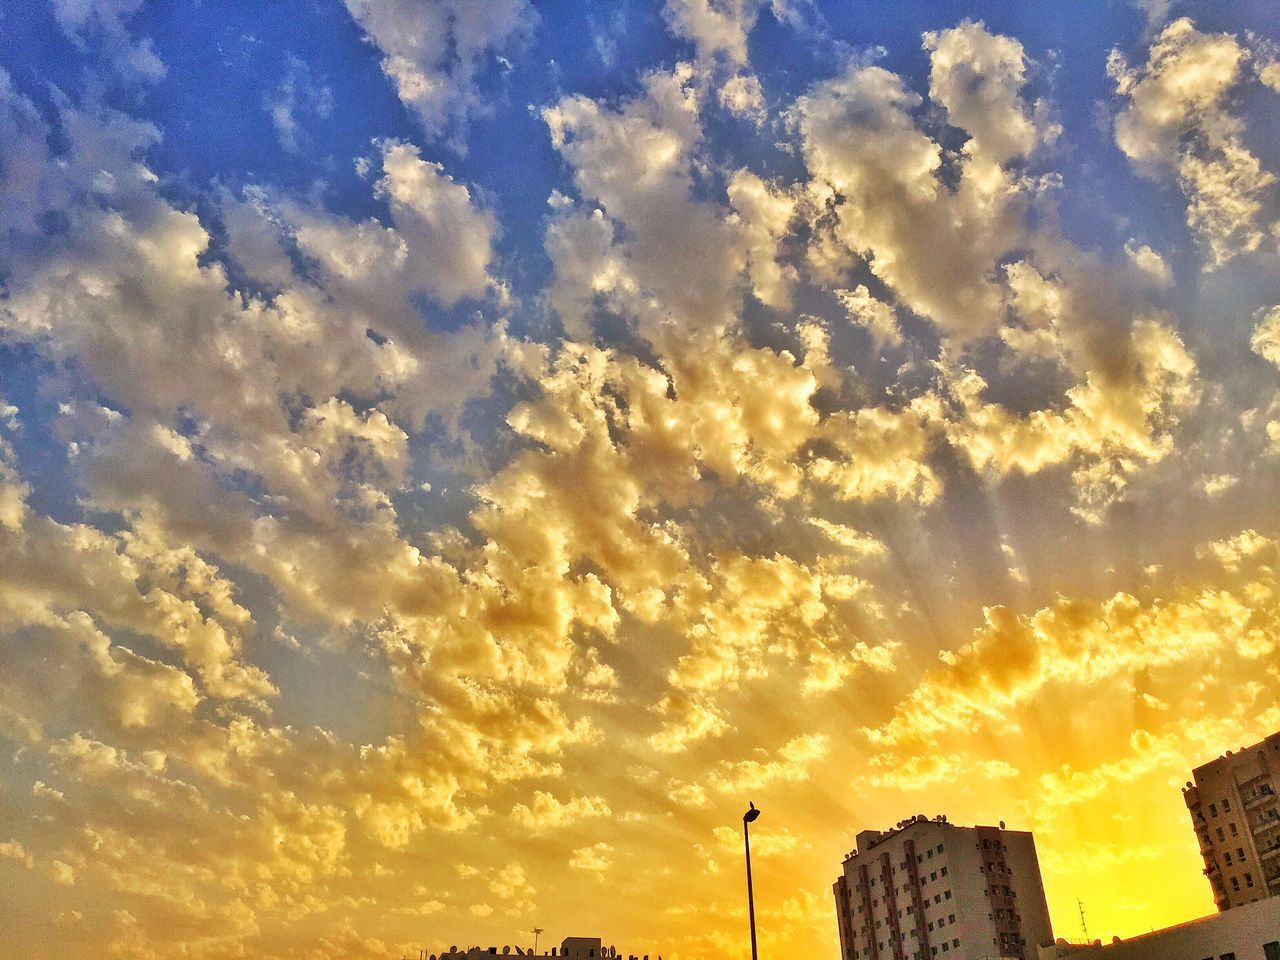 Fine Art Photography sky Morning morning light Light sky Rays sunrise Sun bright Golden Horizon dubai Layers And Colors Warmth Scenic IPhone Photography IPhoneography Capture Angle Amazing View Bright Highlights Composition Morning Brilliant Clouds Photography